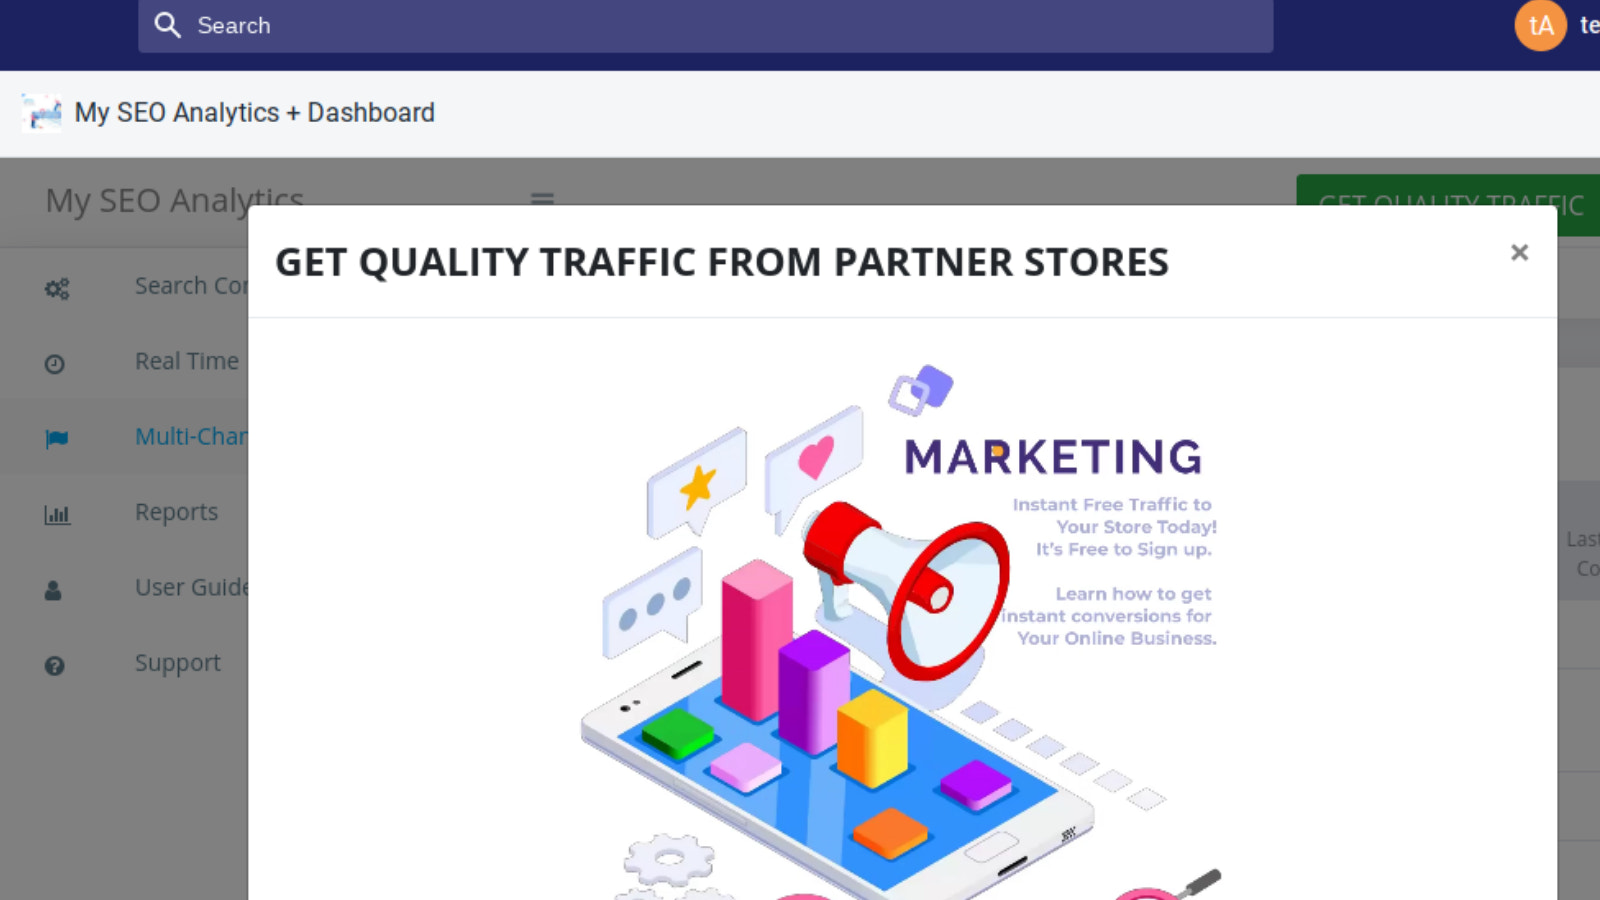 Get Quality and Instant Traffic for Free to Your Website